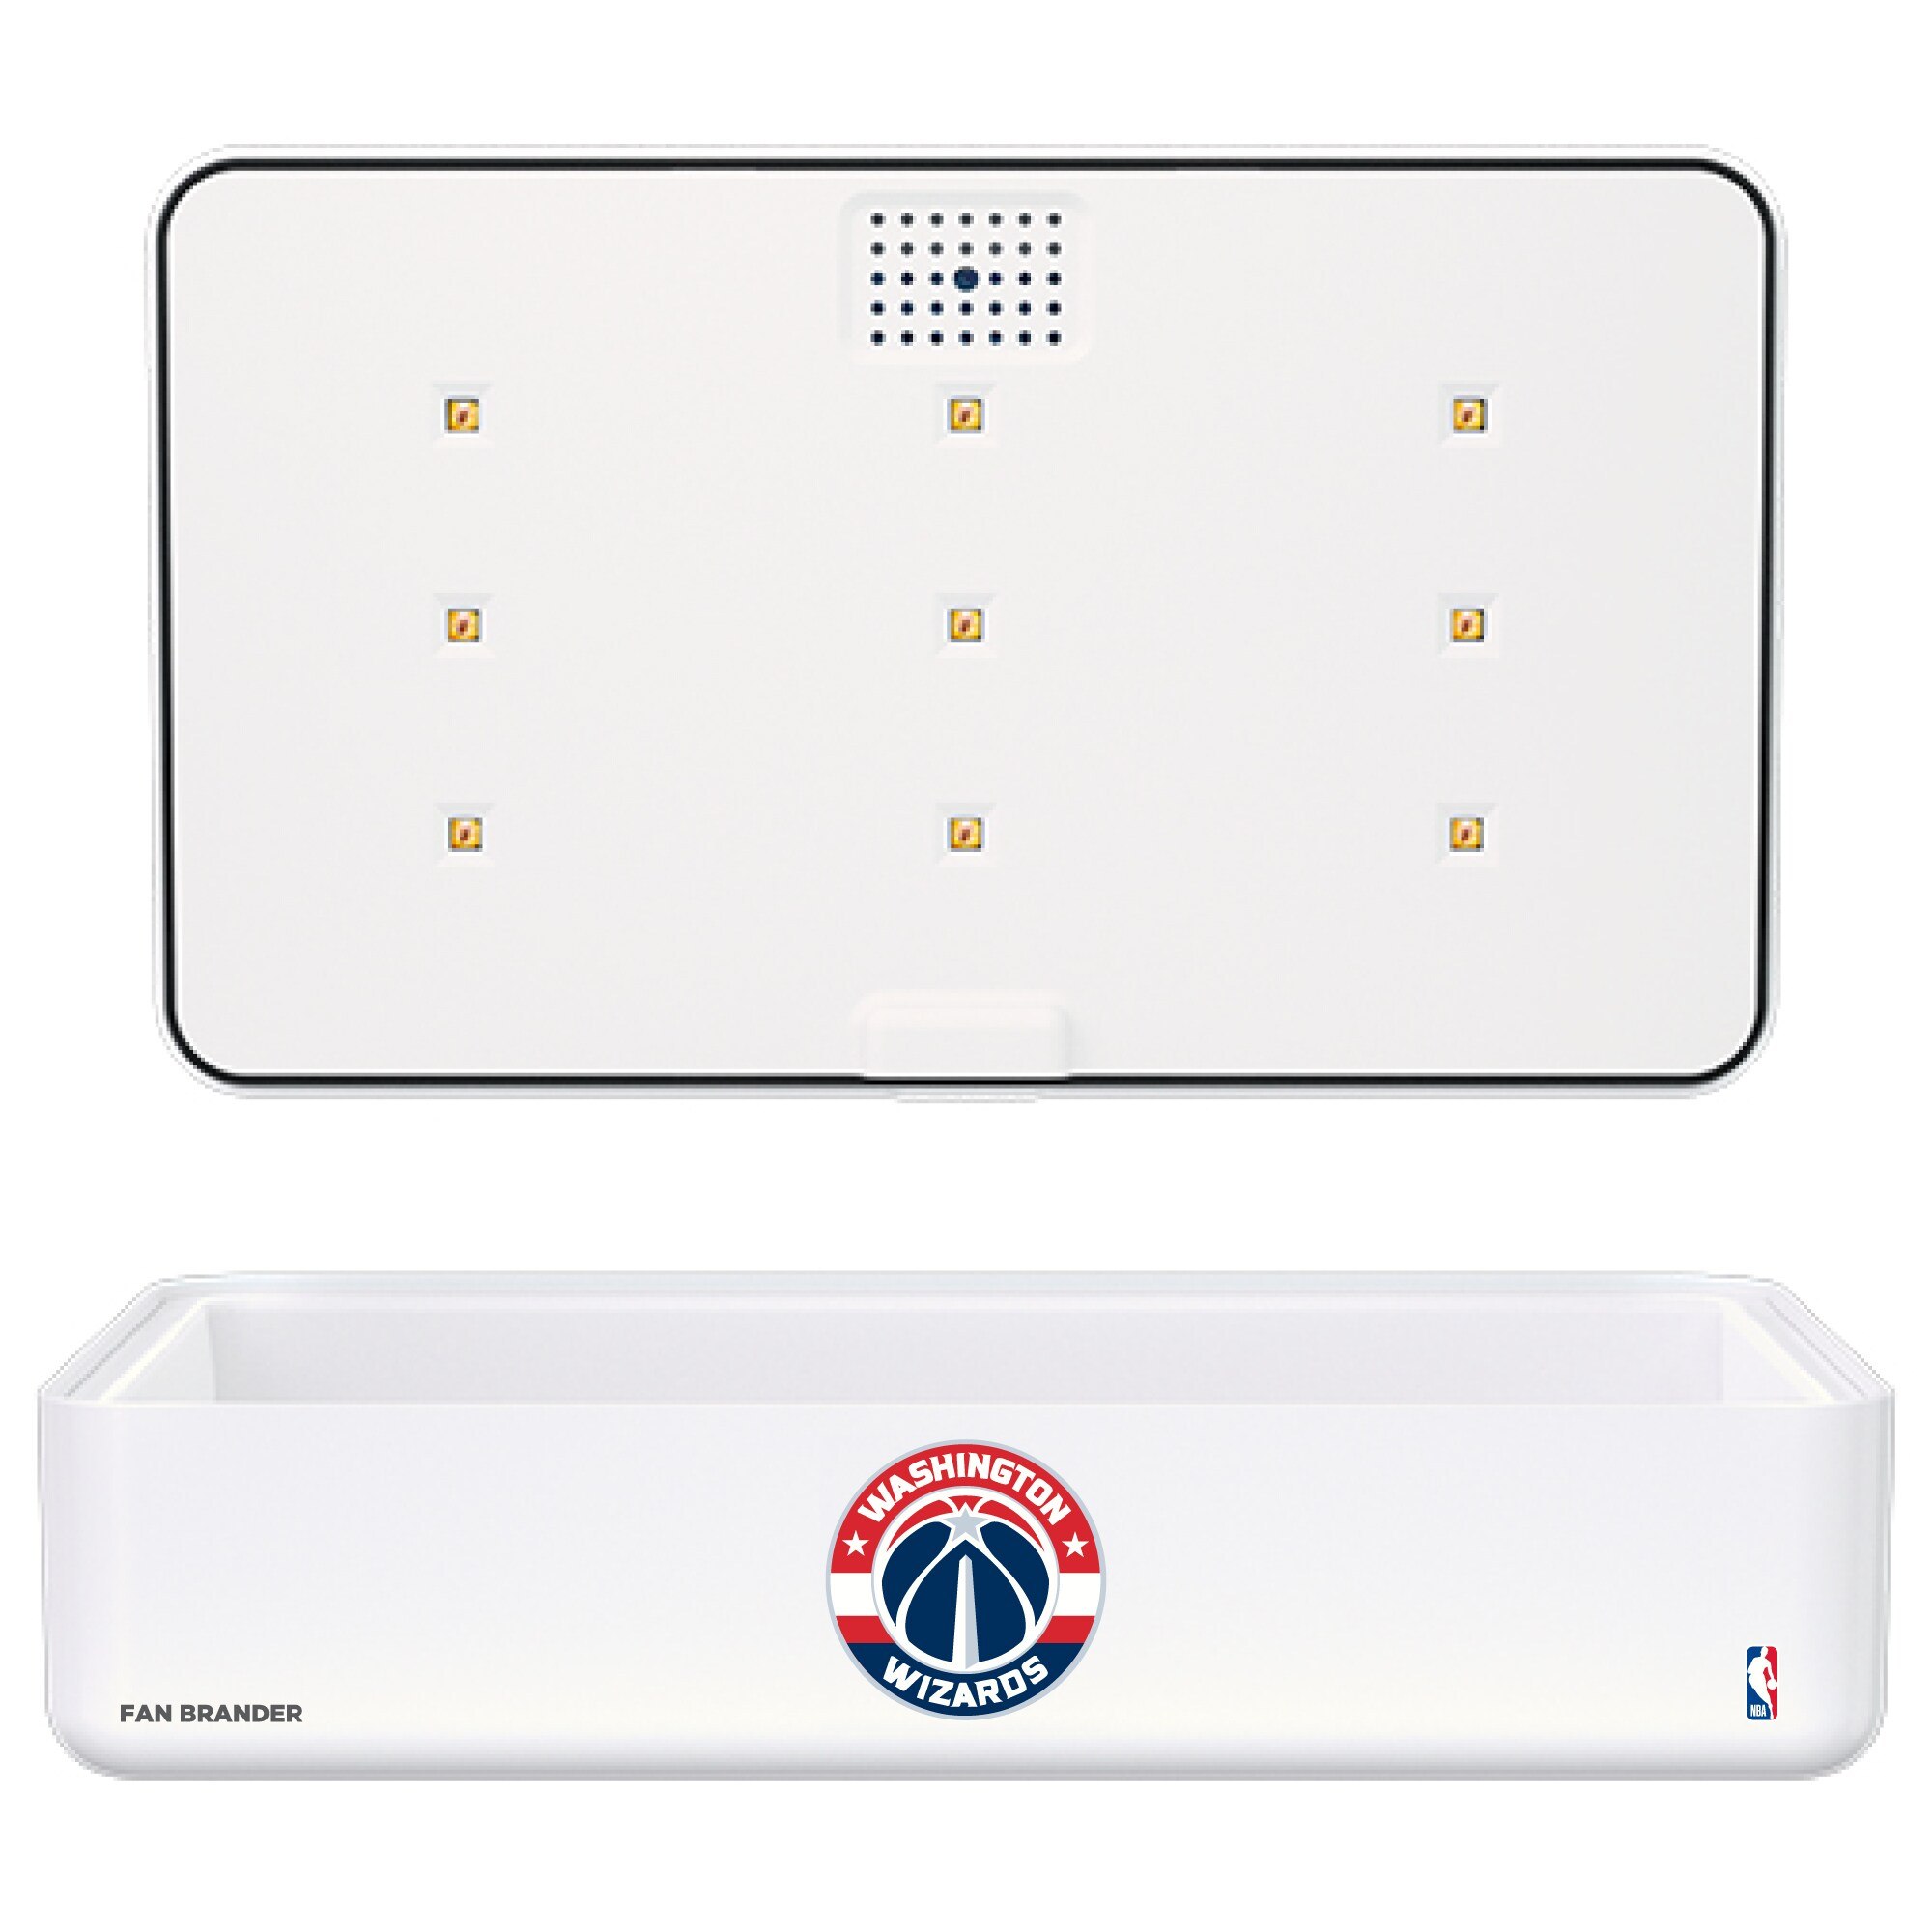 Washington Wizards Portable UV Phone Sterilizer & Wireless Charger - White